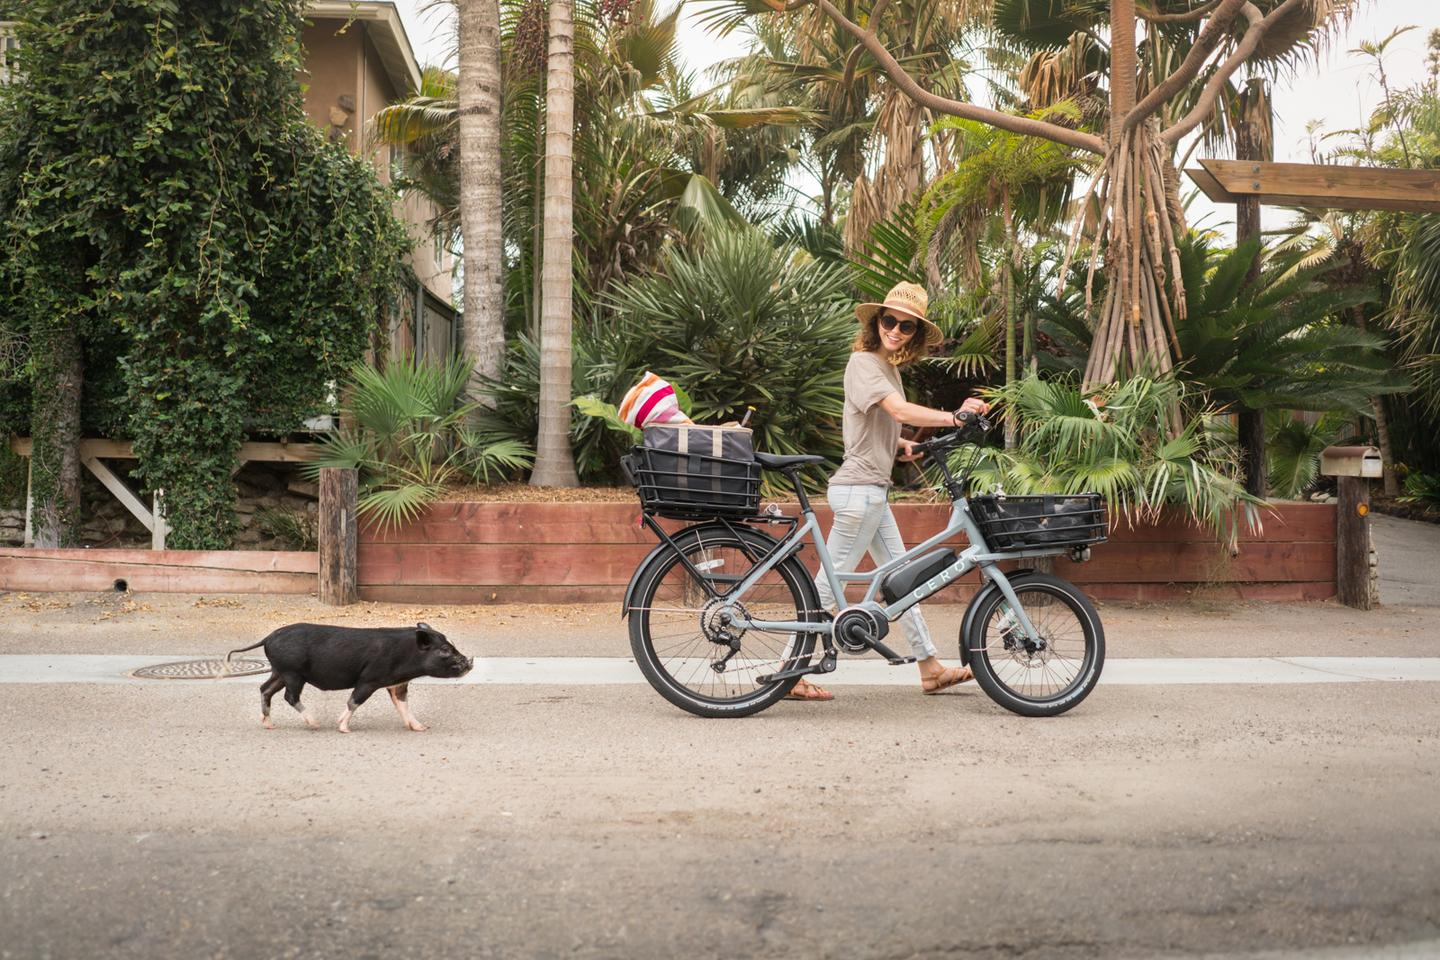 The CEROOne offers a more compact and traditional designversus some of the other electric cargo bikemodels out there